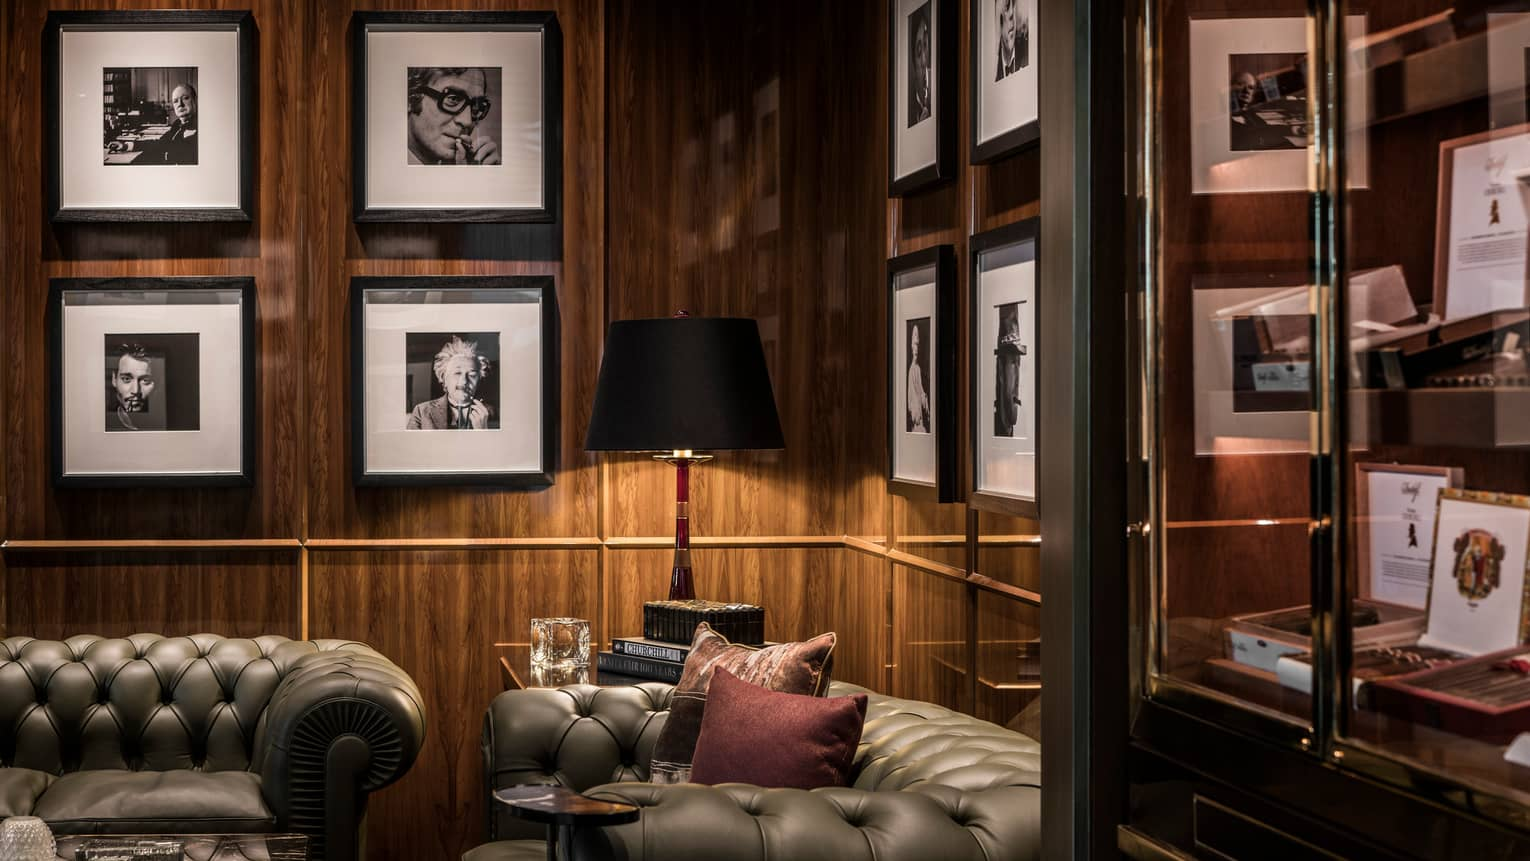 Churchill Club lounge two leather sofas against dark wood wall, framed black-and-white photos on walls